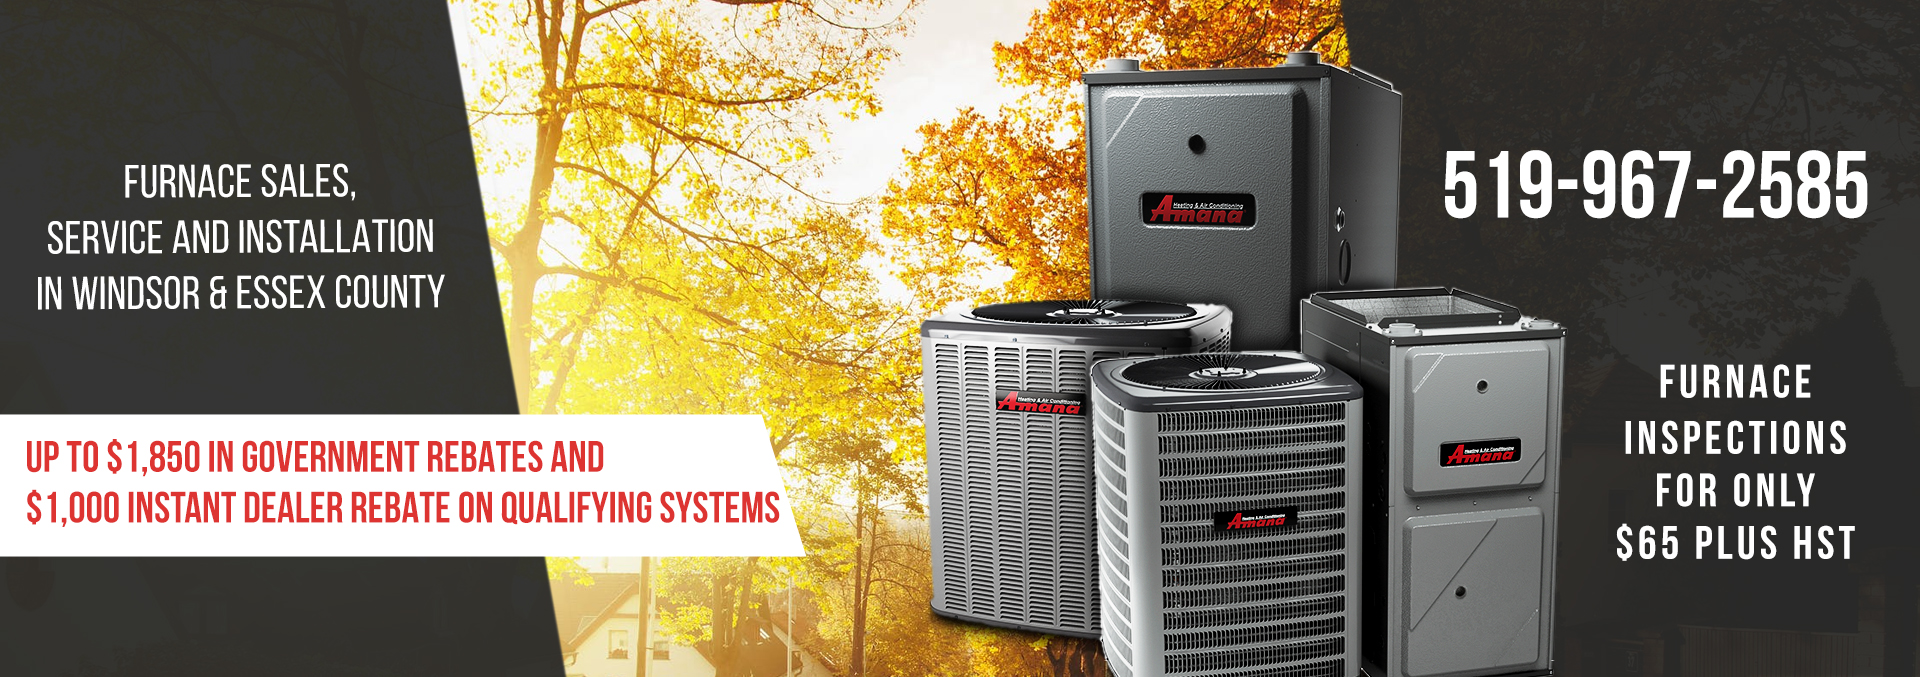 Furnace Inspections in Windsor-Essex for Just $65.00